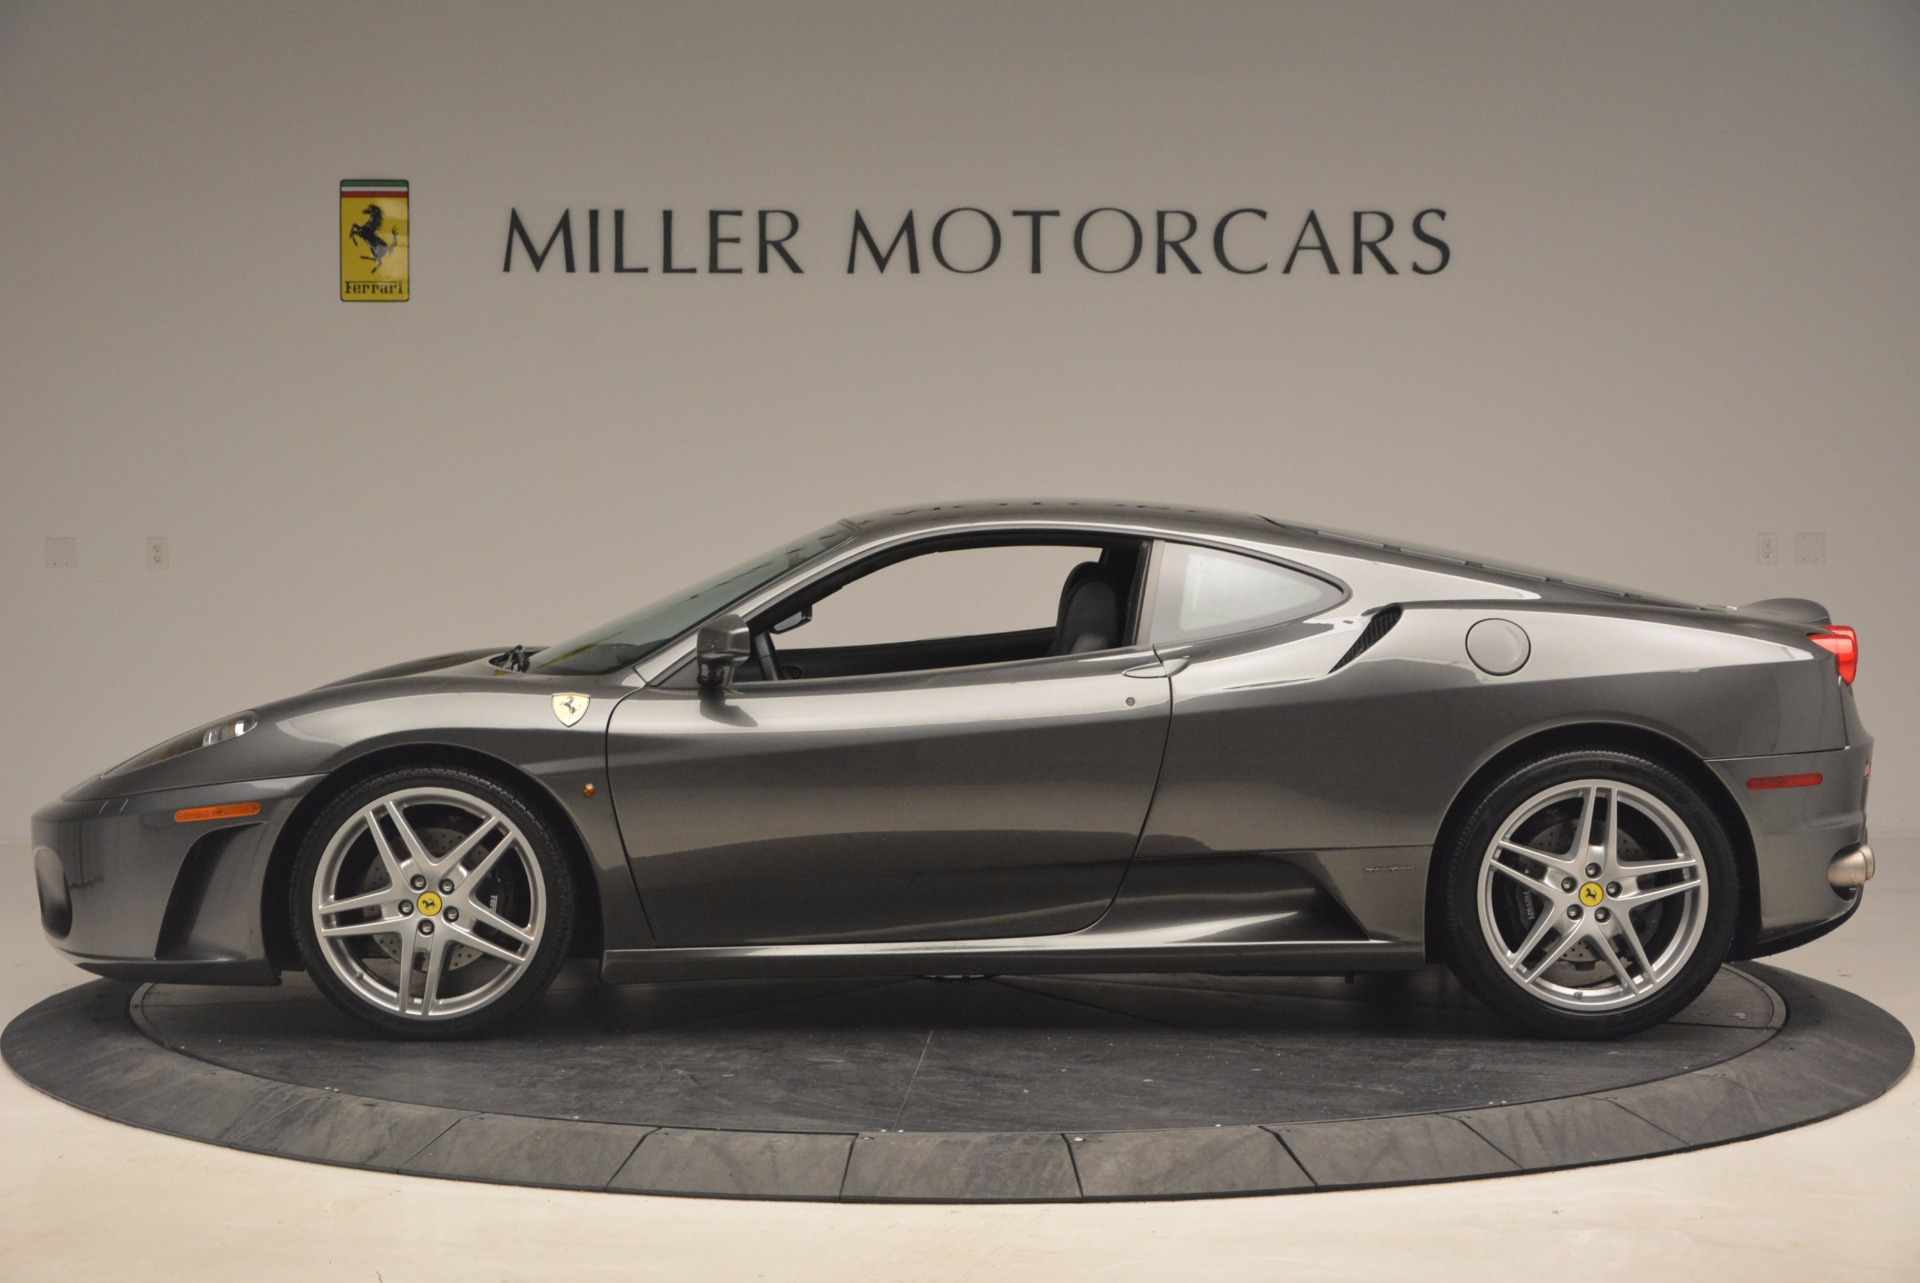 Used 2005 Ferrari F430 6-Speed Manual For Sale In Greenwich, CT 1286_p3